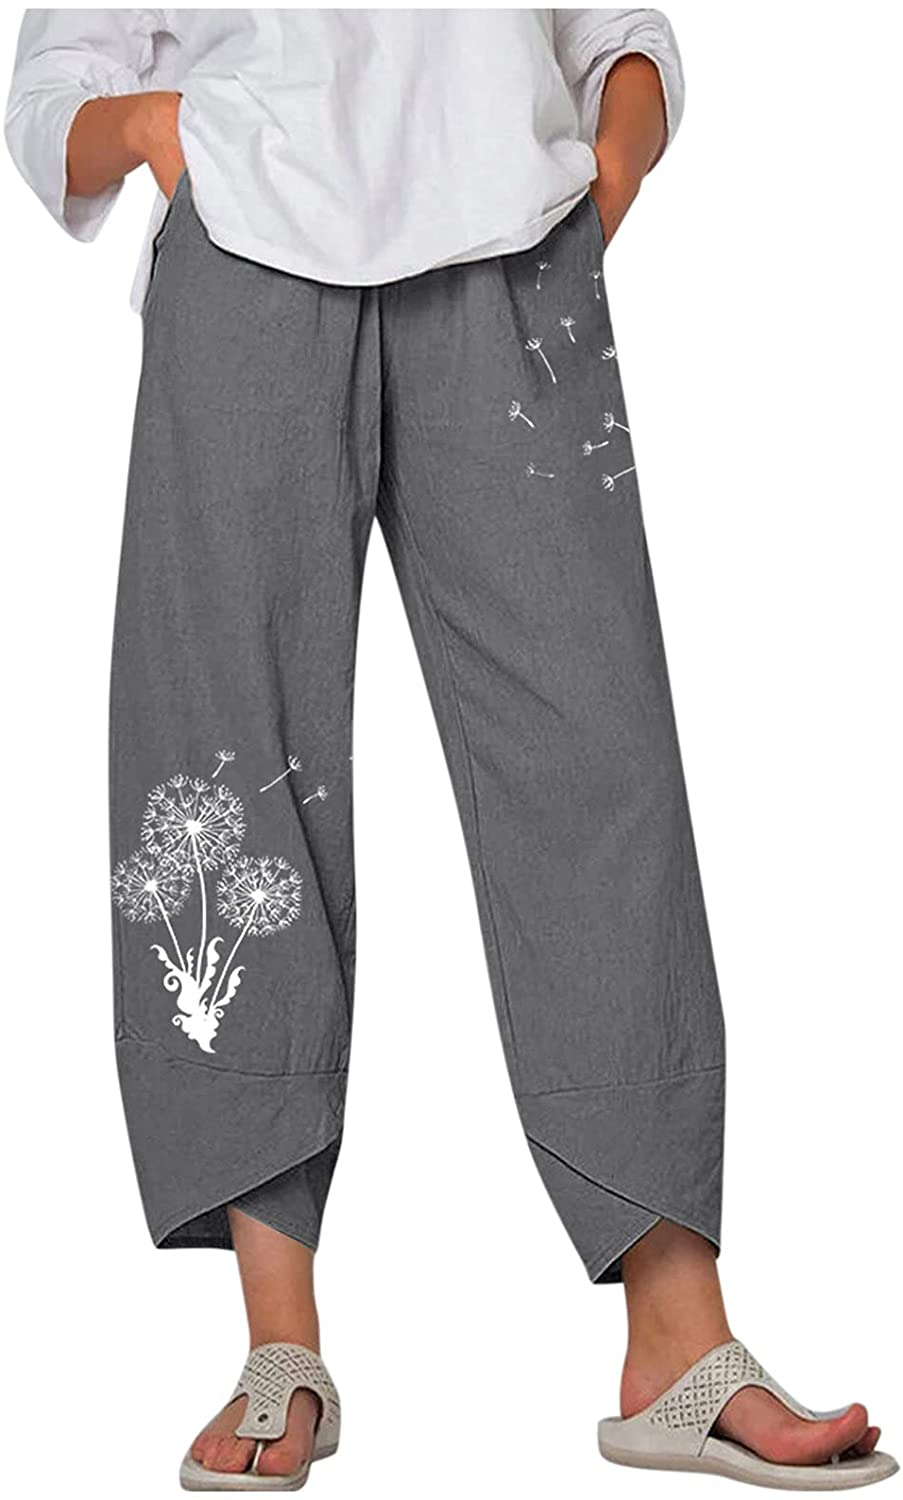 XLLX Women's Casual High Waisted Wide Leg Pants Embroidery Pockets Lounge Trousers